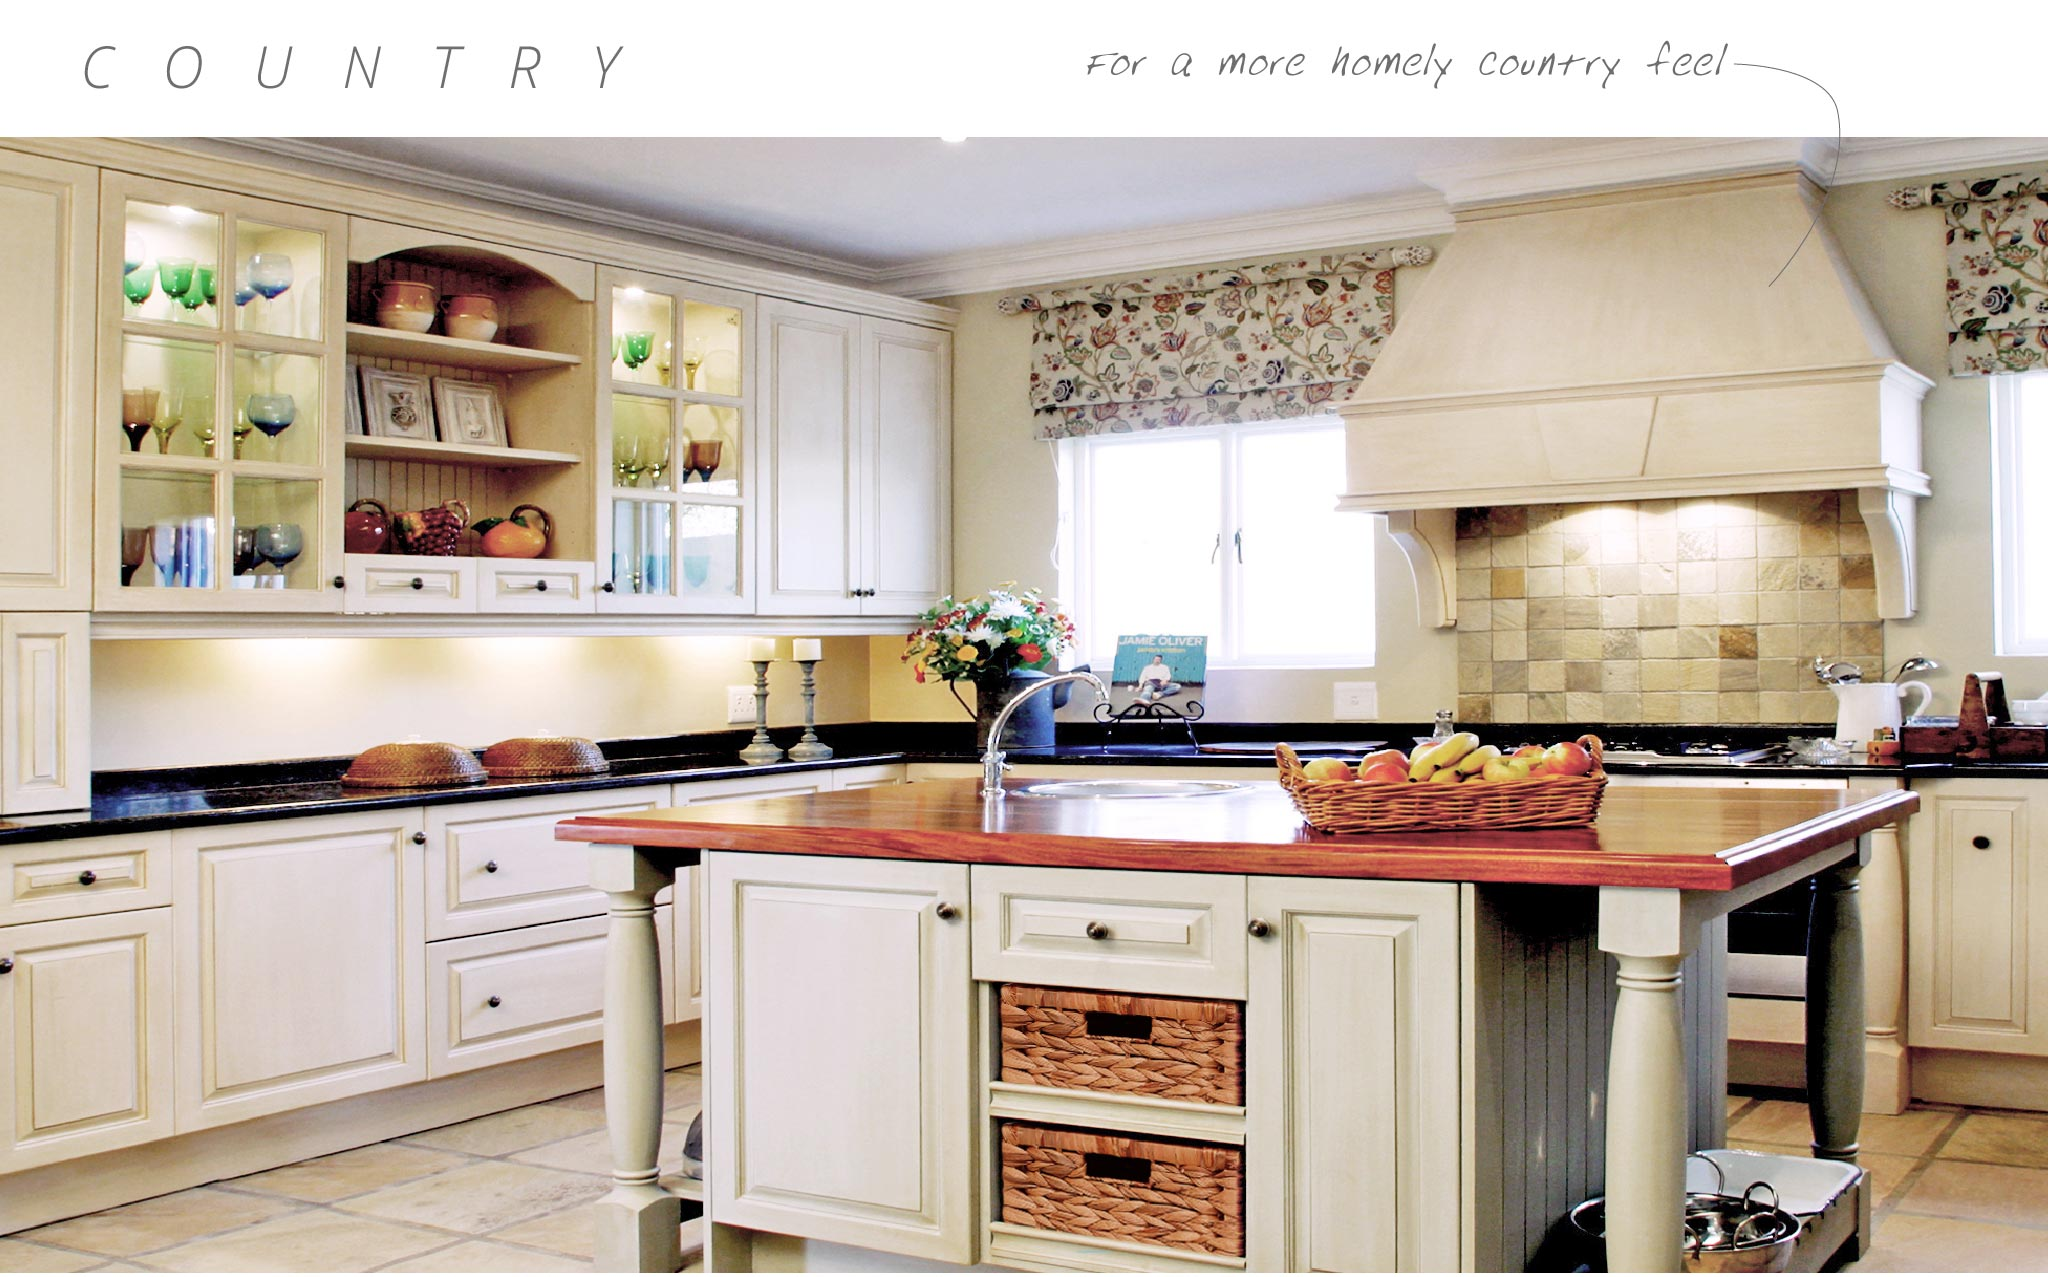 M r quality kitchens kitchen inspirations for Quality kitchens